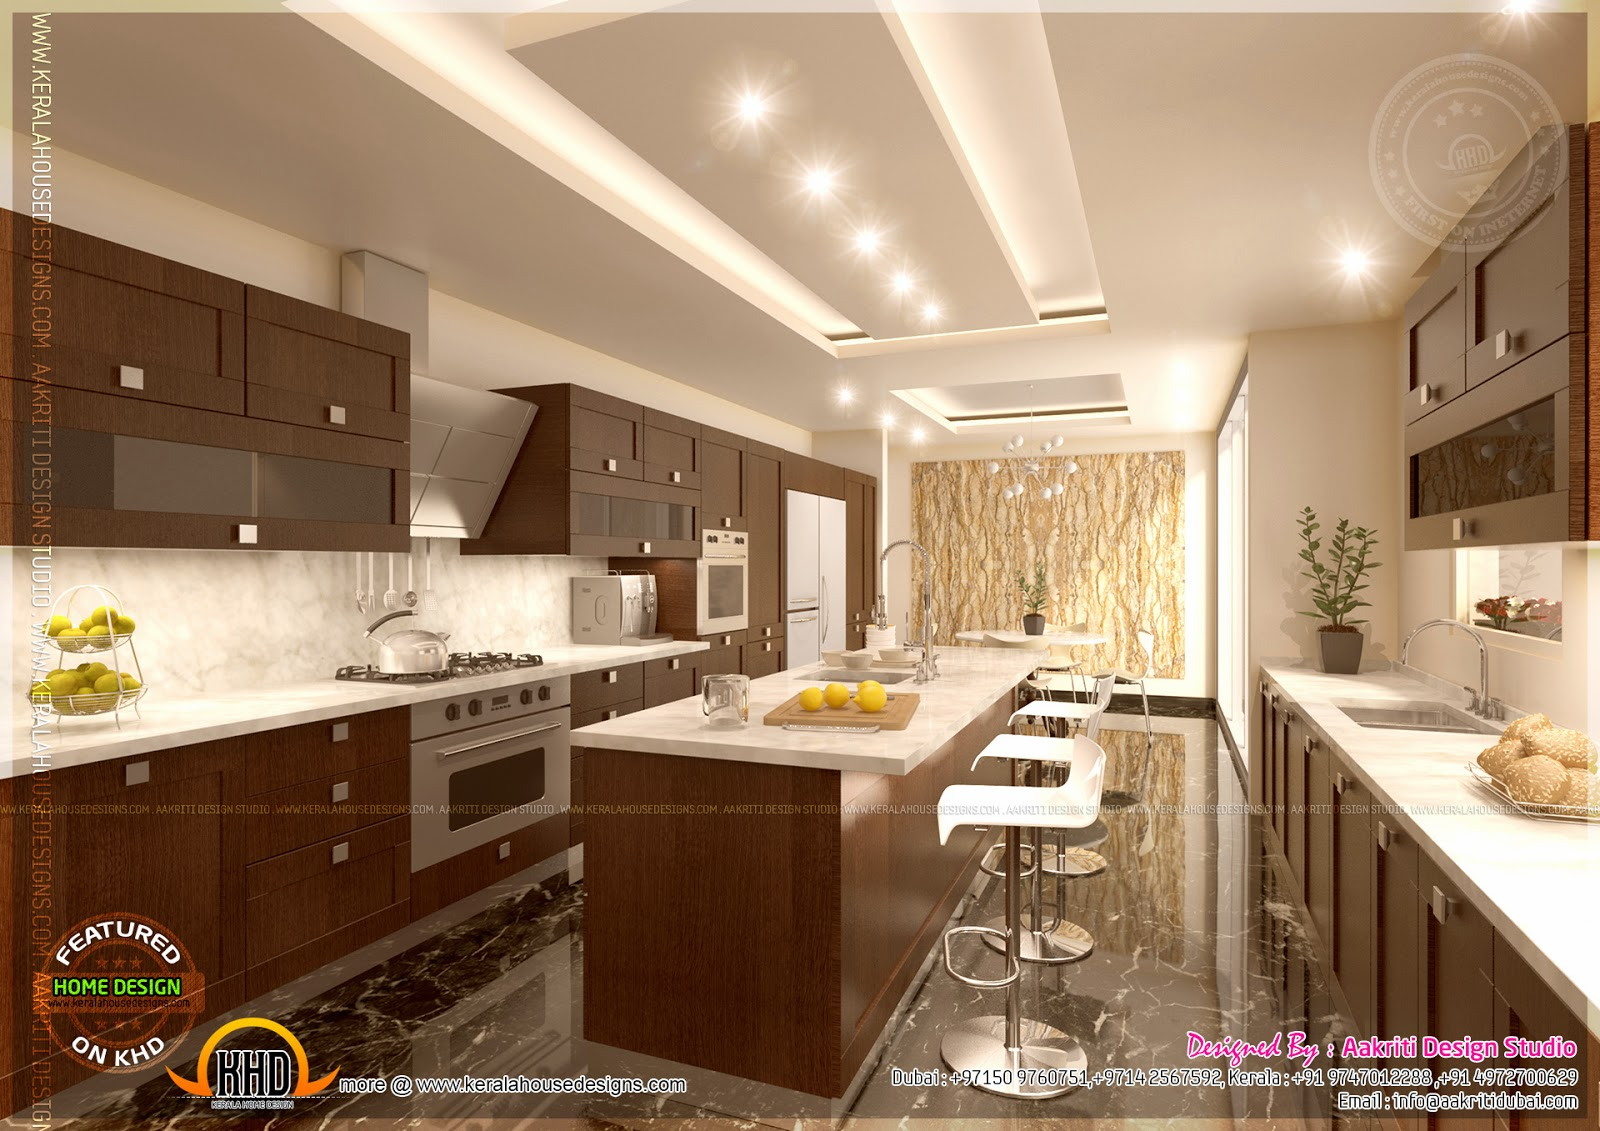 Kitchen designs by aakriti design studio kerala home for Different interior designs of houses